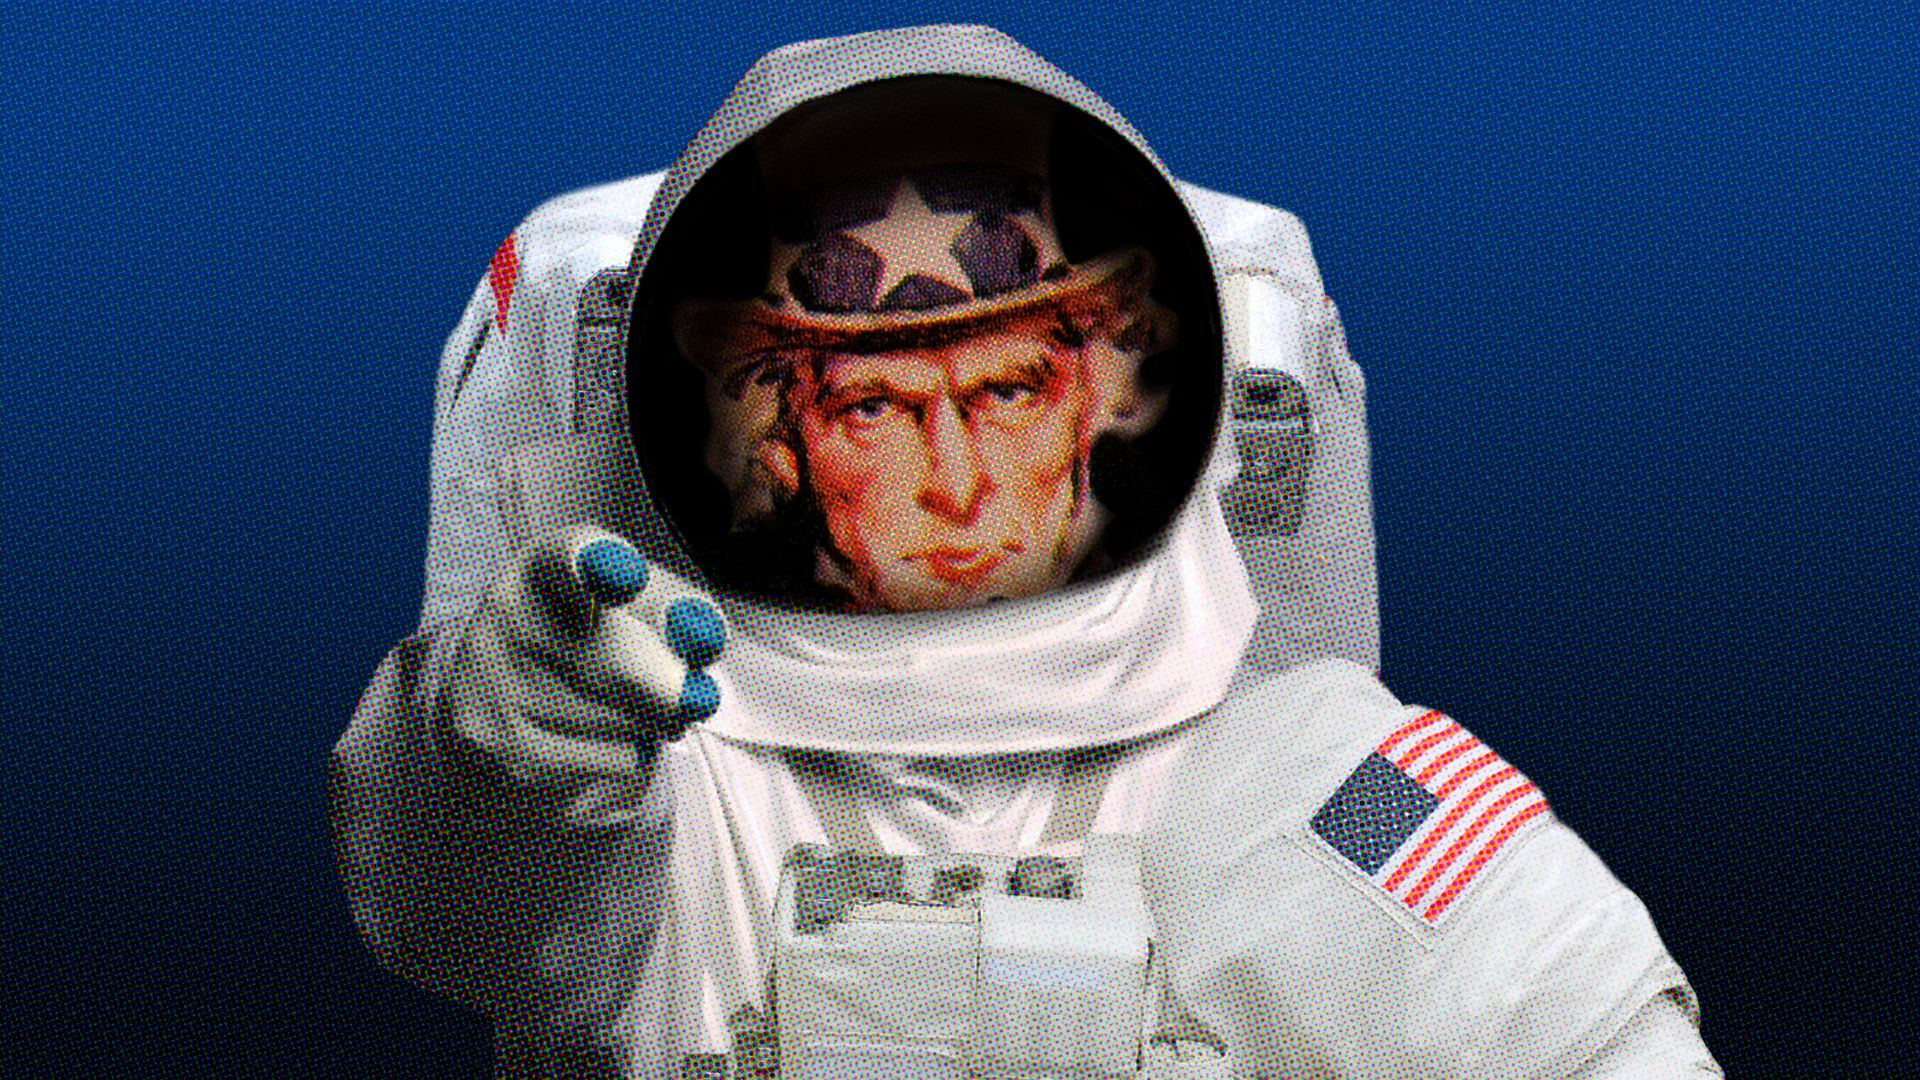 Illustration Of Uncle Sam In Spacesuit